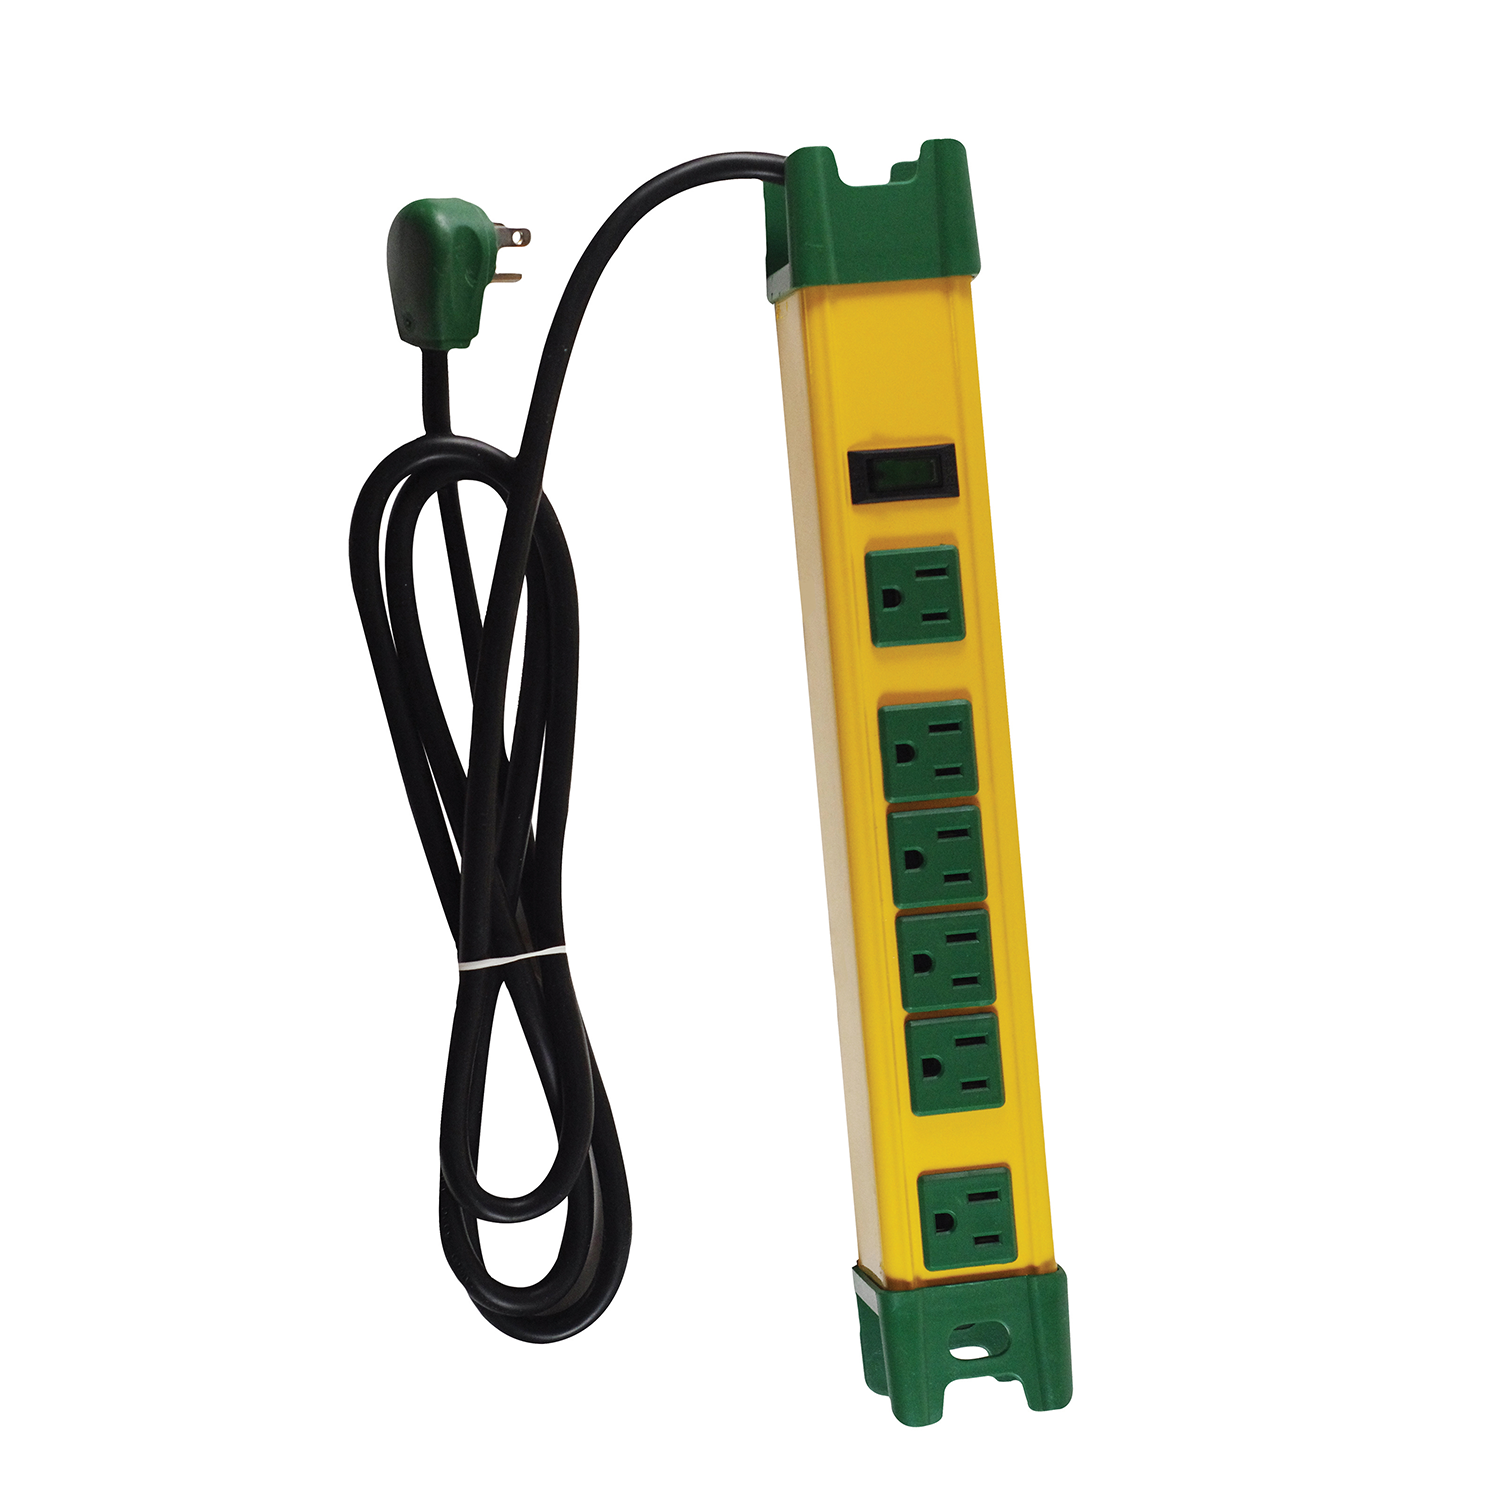 GoGreen Power 6 Outlet Metal Surge Protector, 6' cord, 26114 Yellow/Green